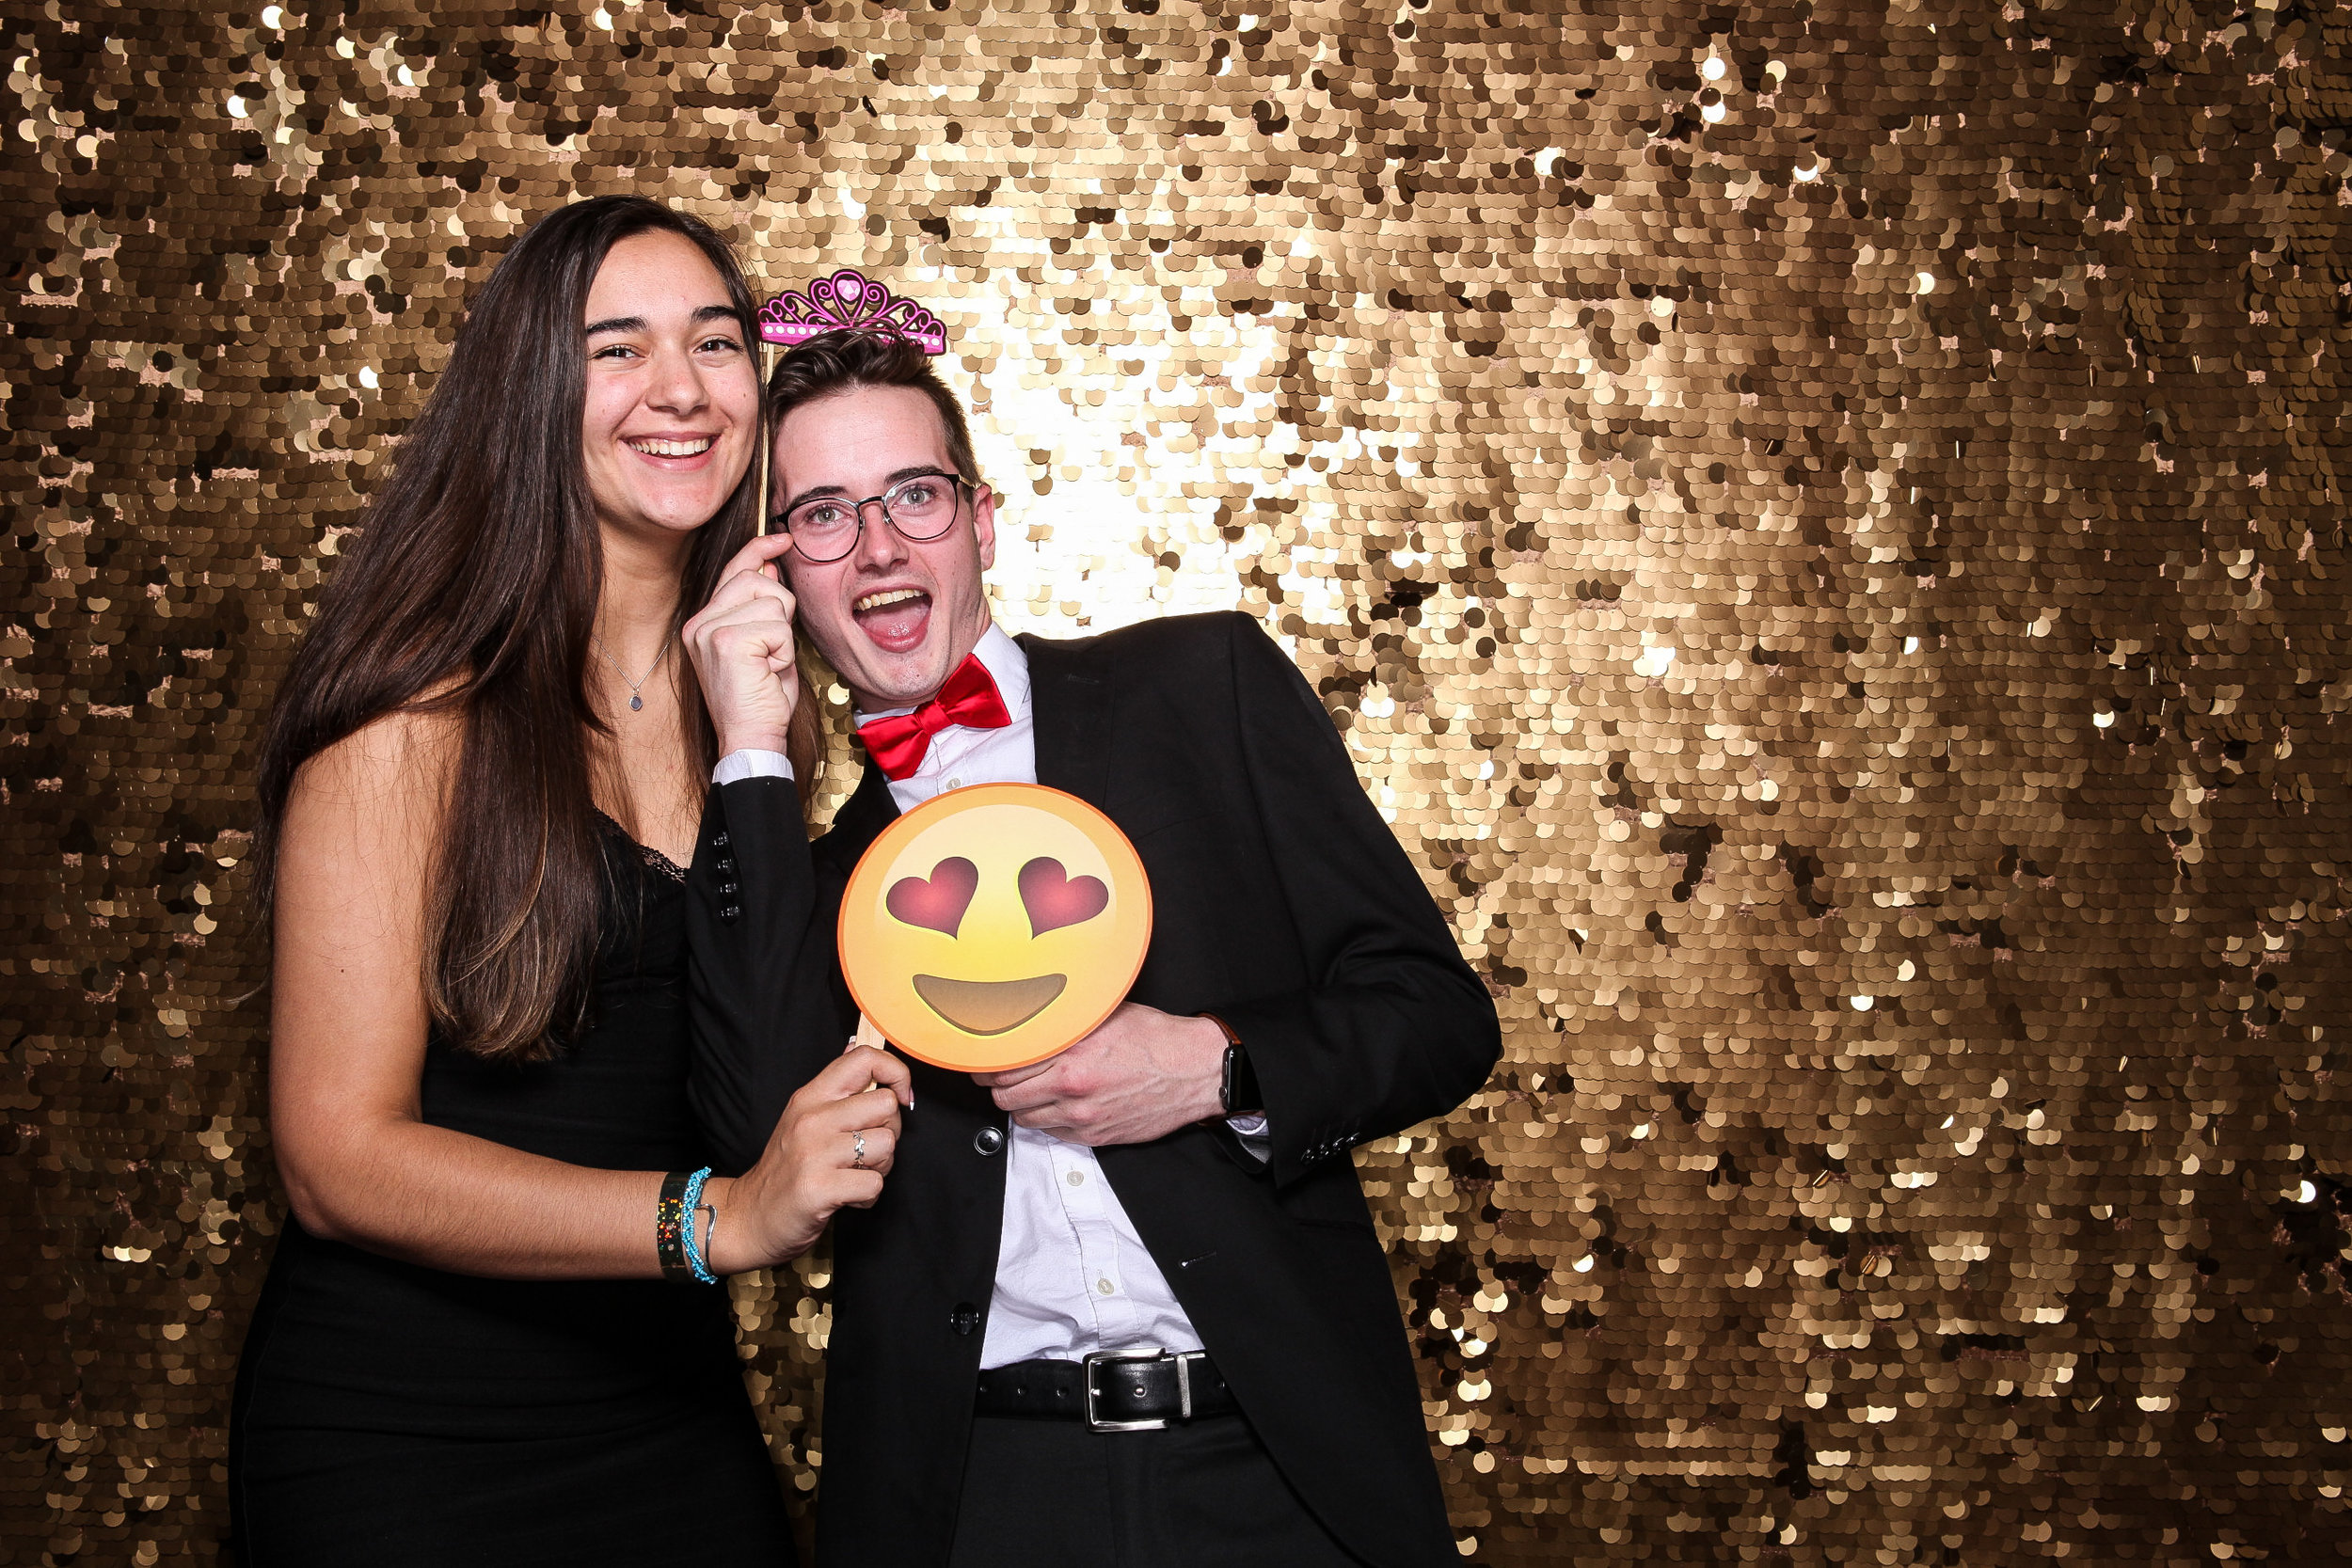 20190503_Adelphi_Senior_Formal-192.jpg